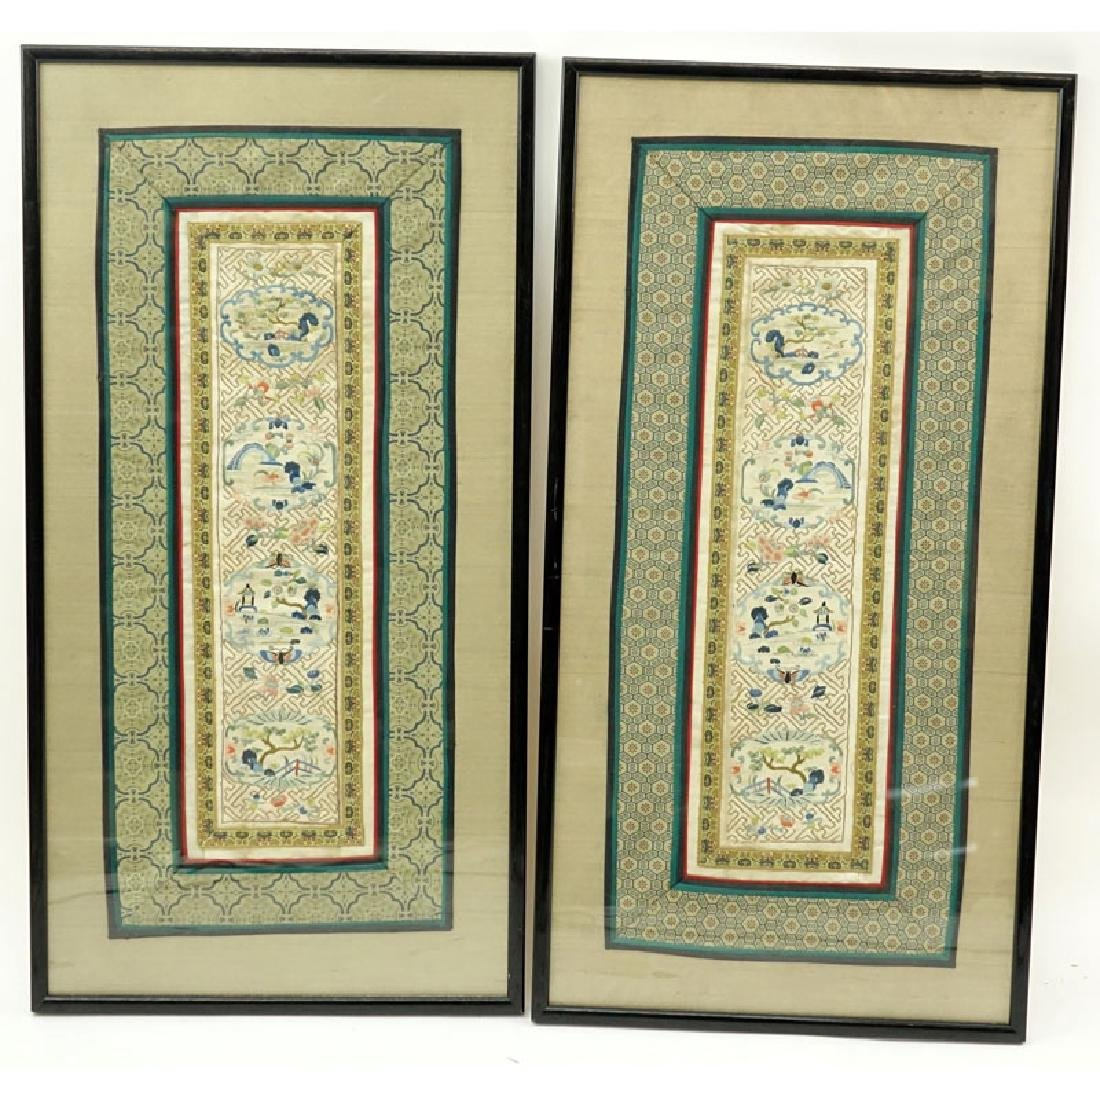 Two (2) Antique Chinese Embroidered Panels. Unsigned.